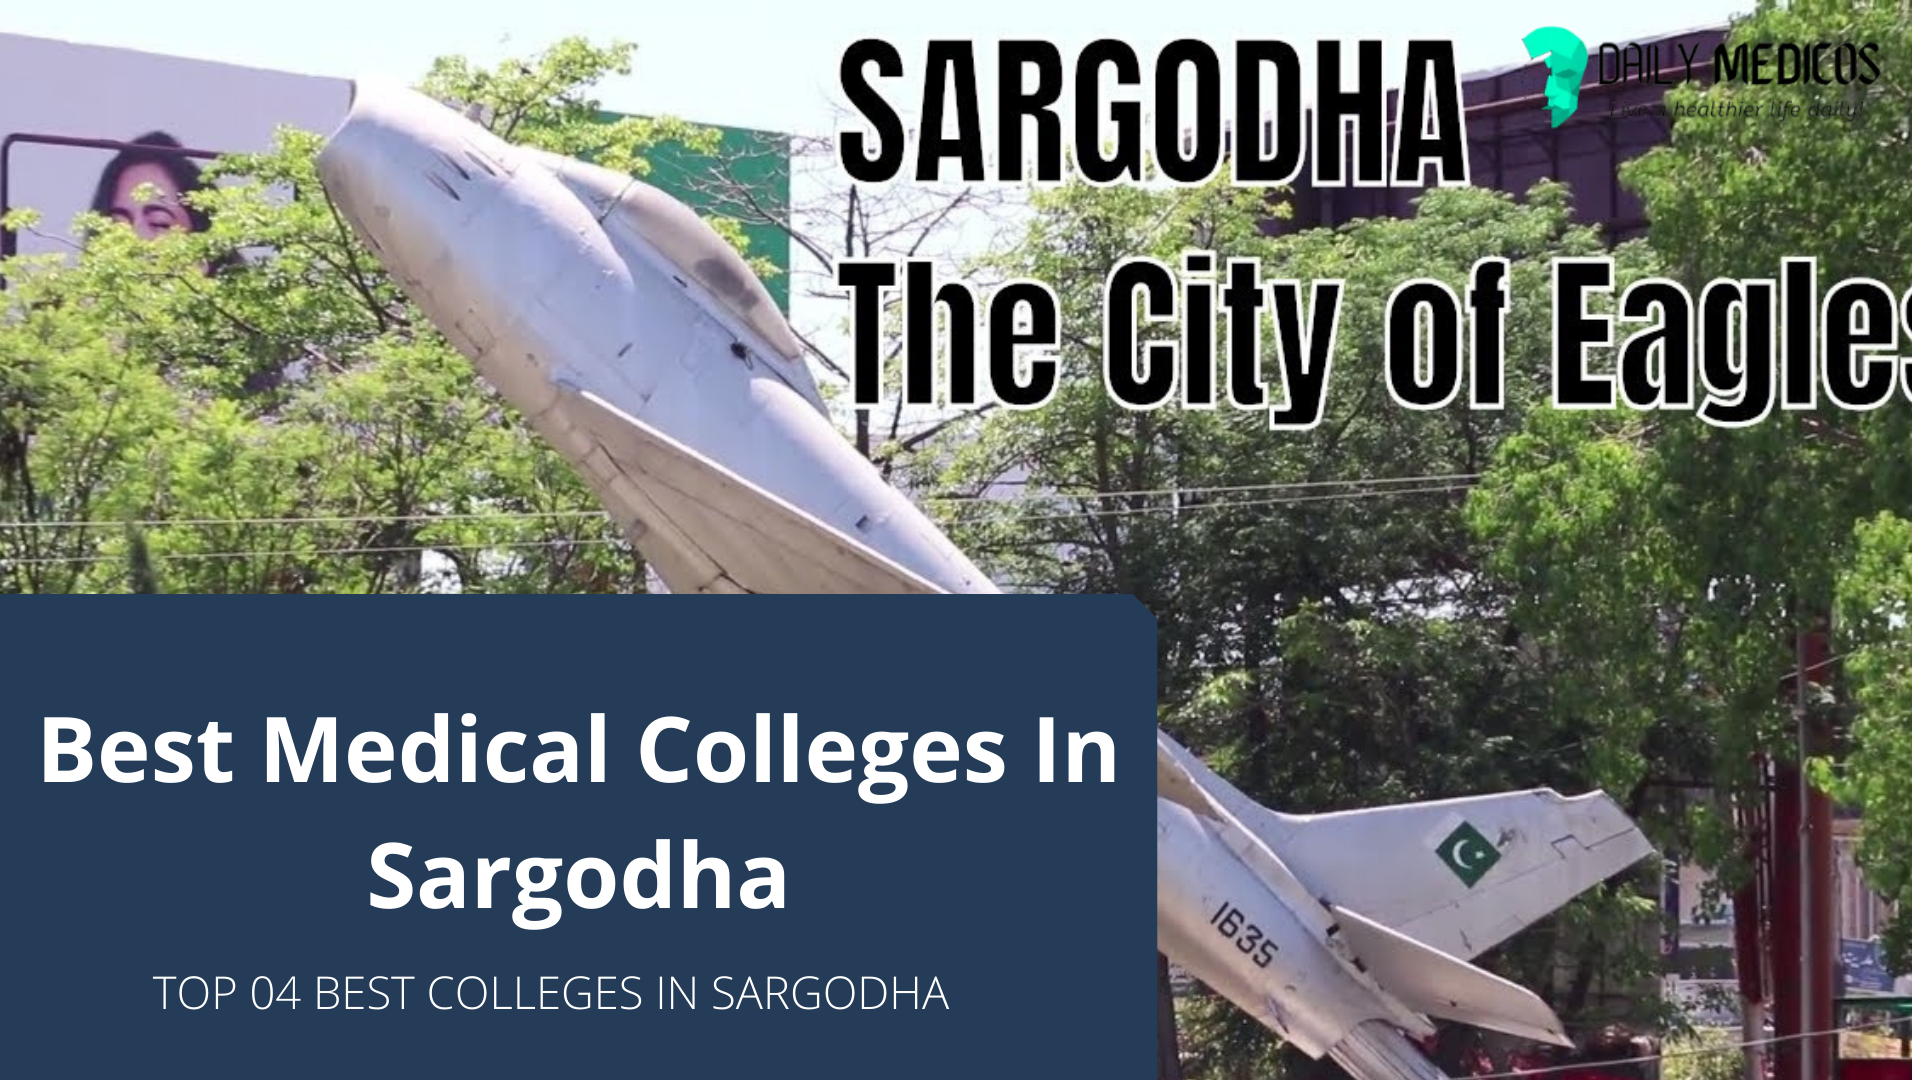 04 Best Medical Colleges In Sargodha [Detailed Guide] 1 - Daily Medicos